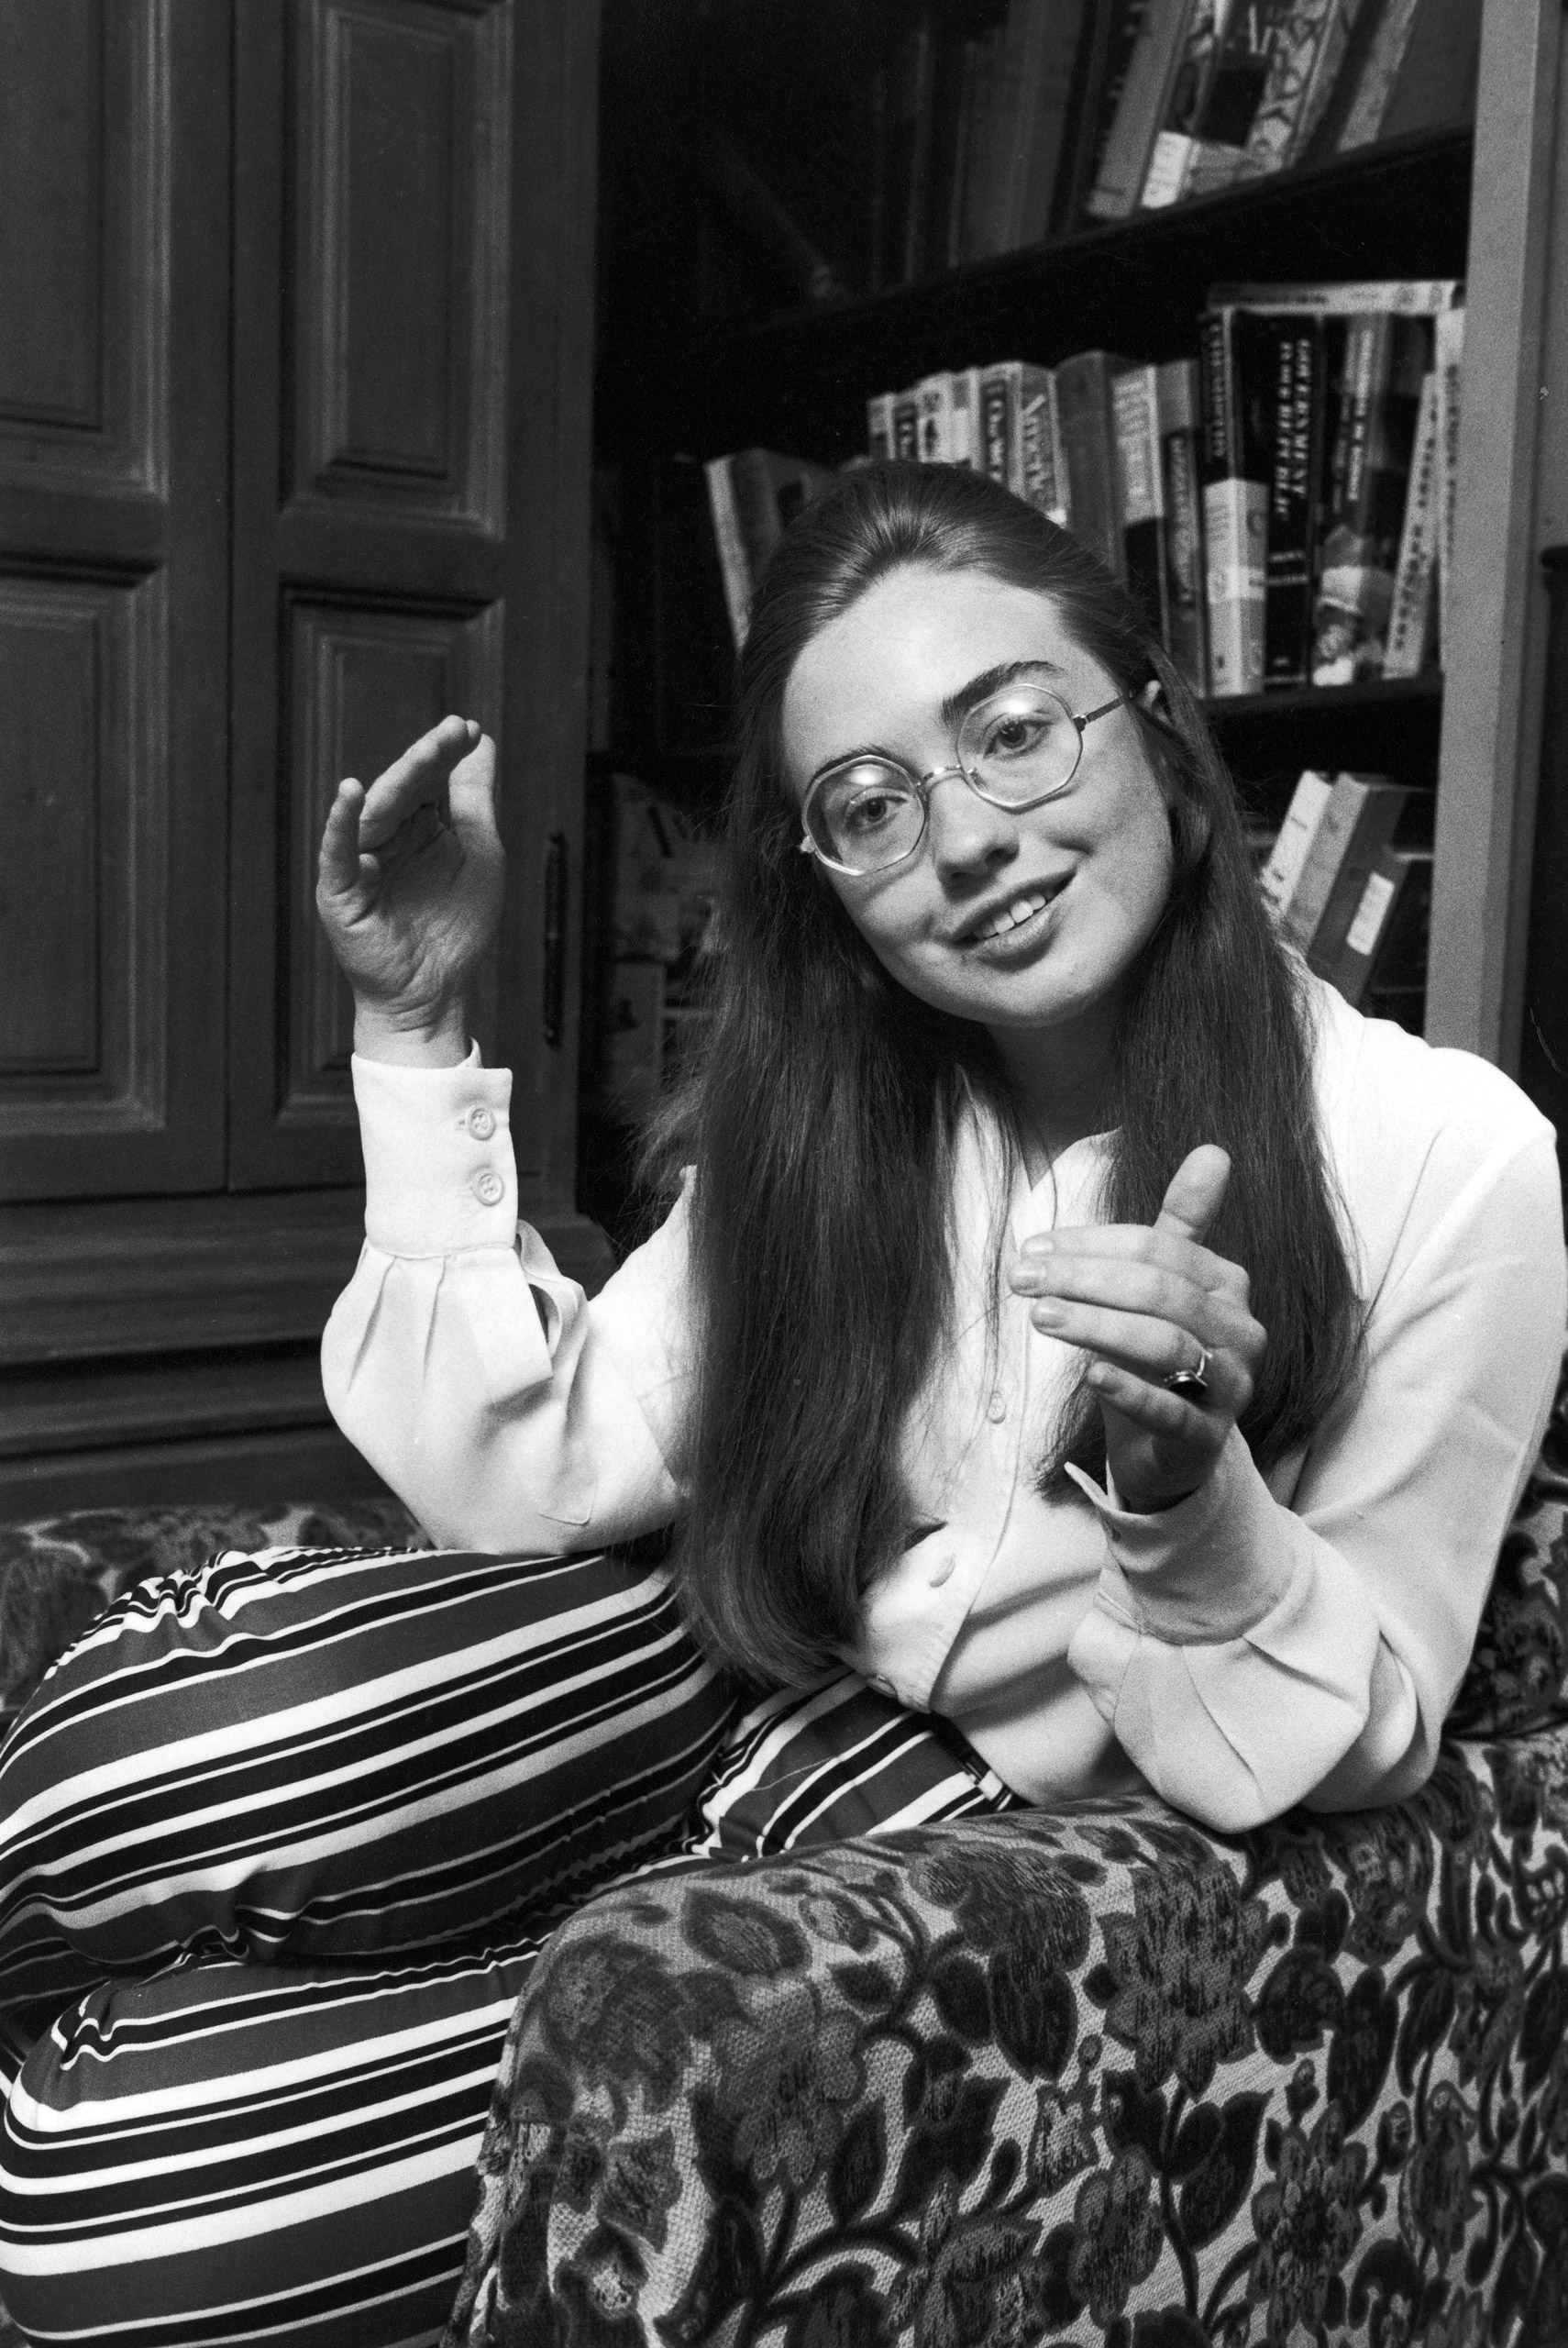 Channel Hillary Clinton's days as a Wellesley College undergrad (and as a Rodham), pictured in 1969, with big specs and striped trousers.